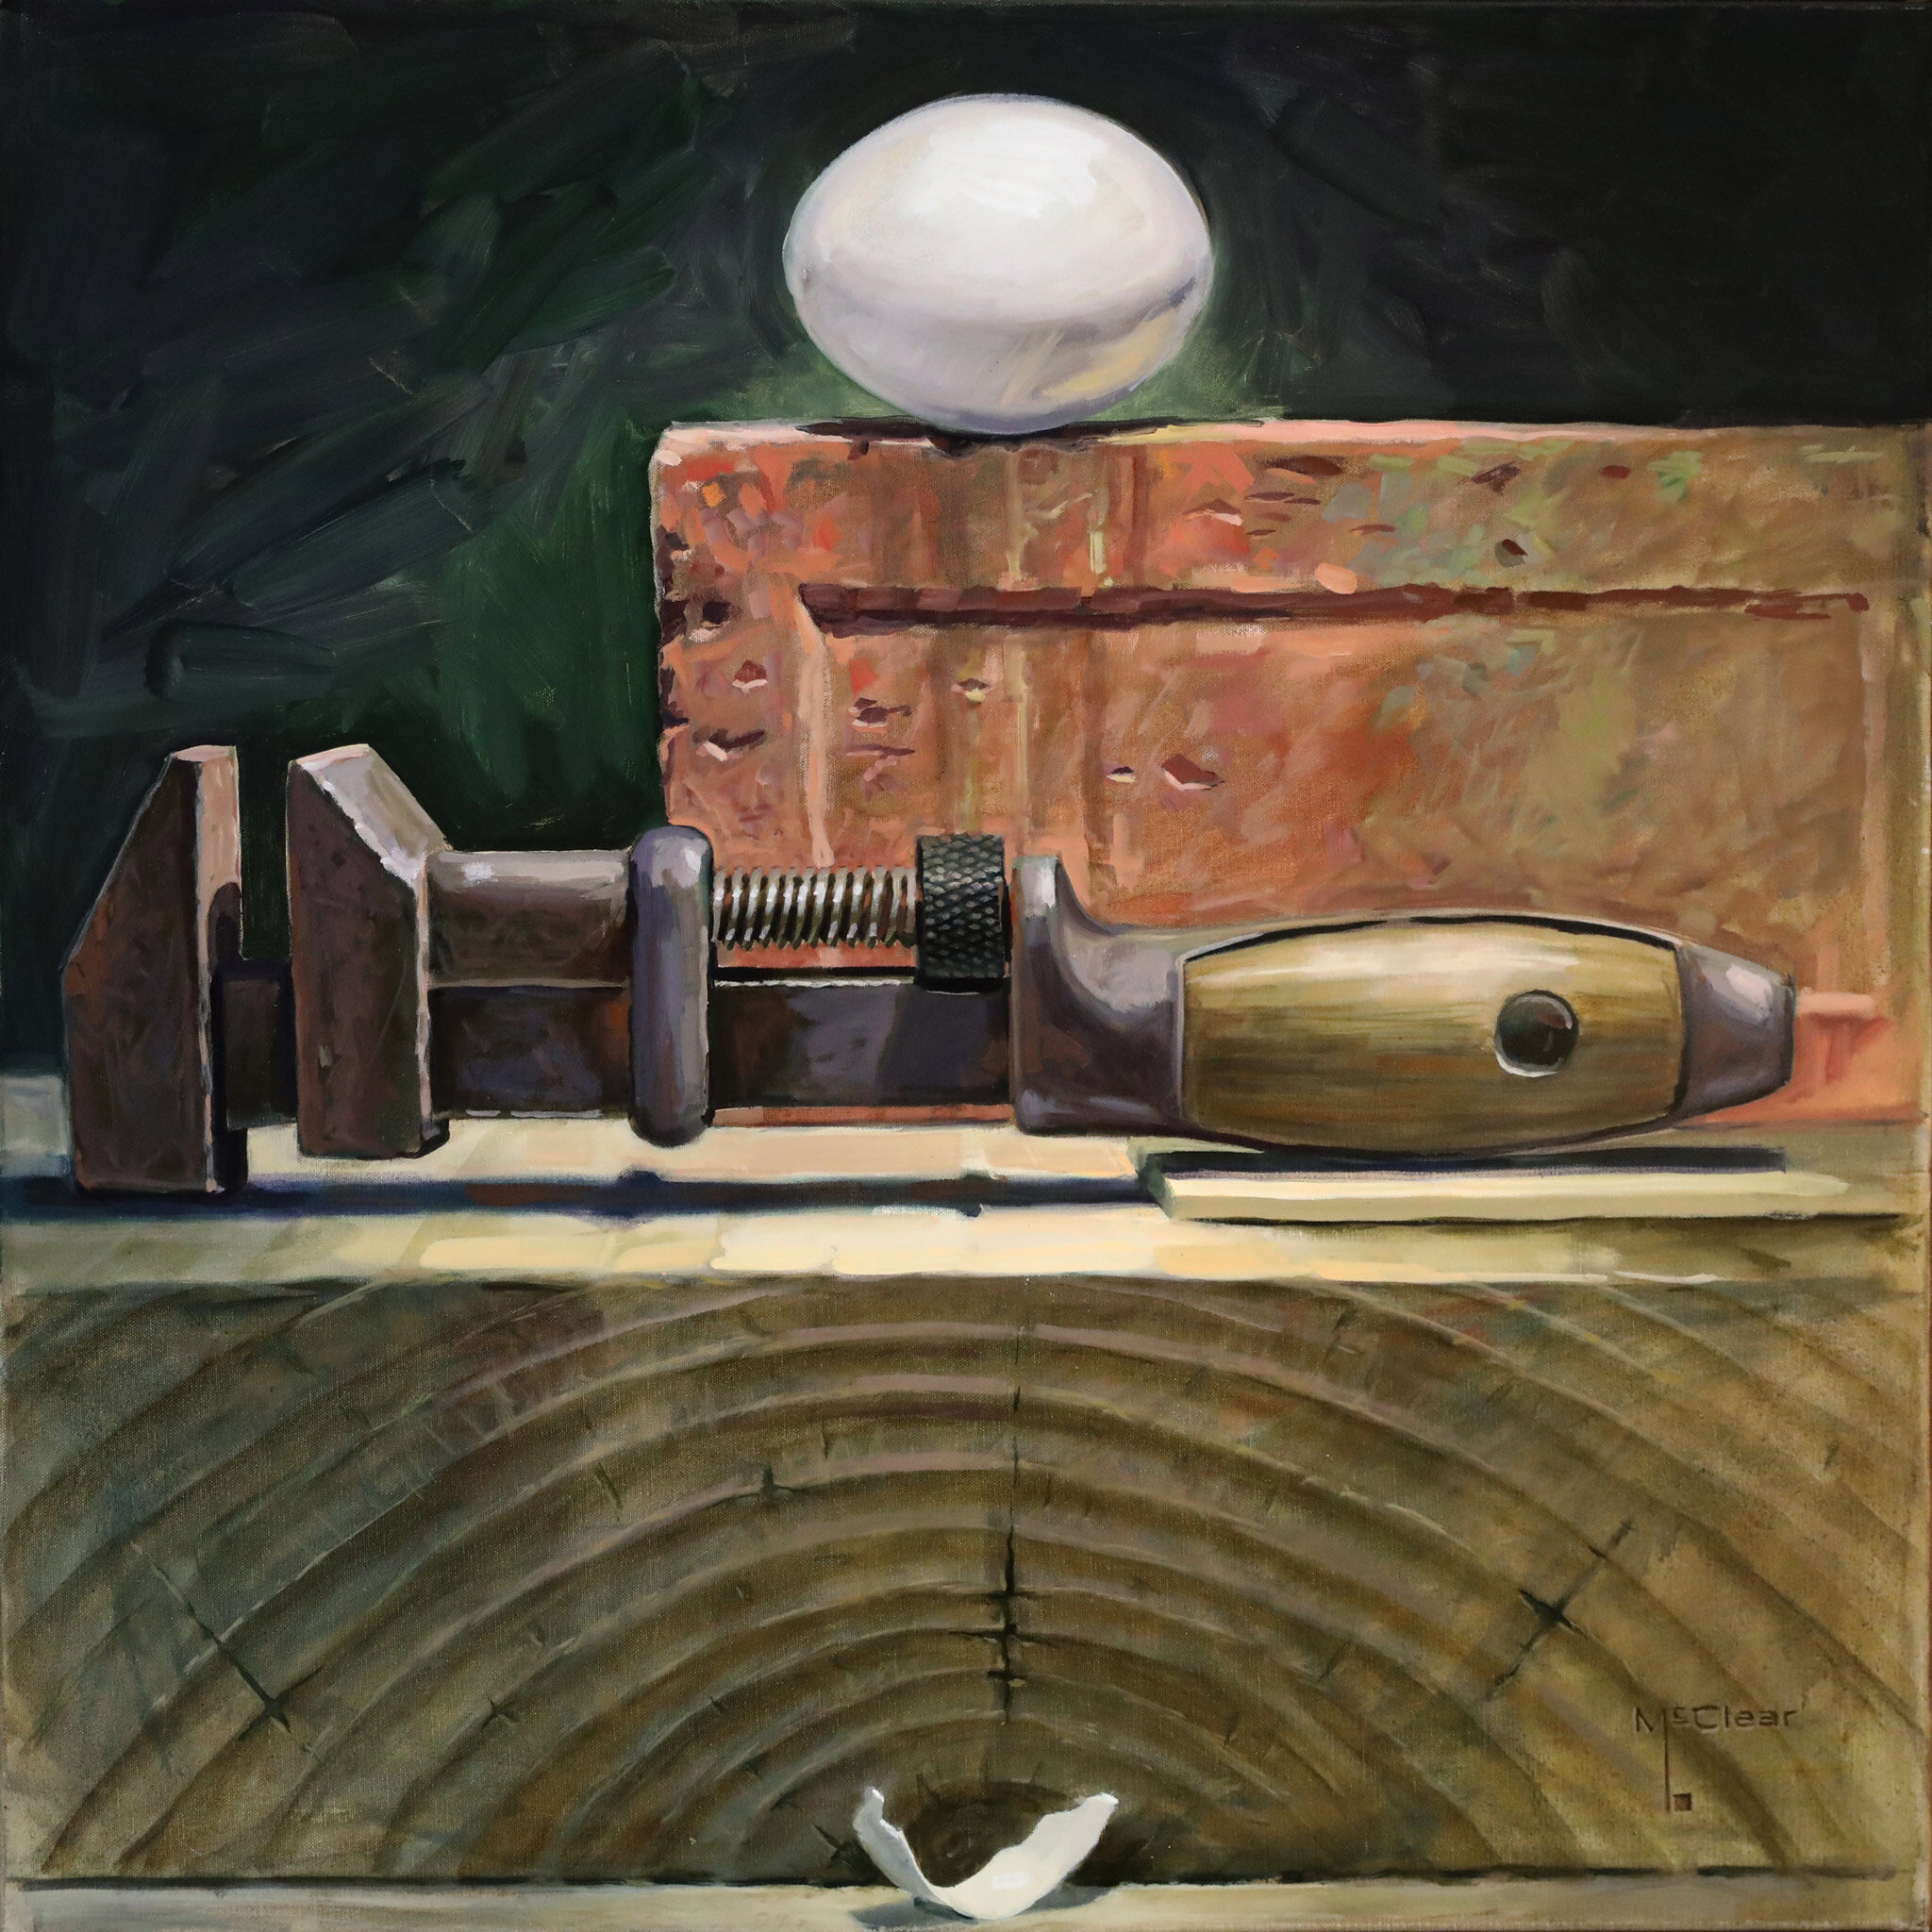 Wrench and Egg by Brian McClear